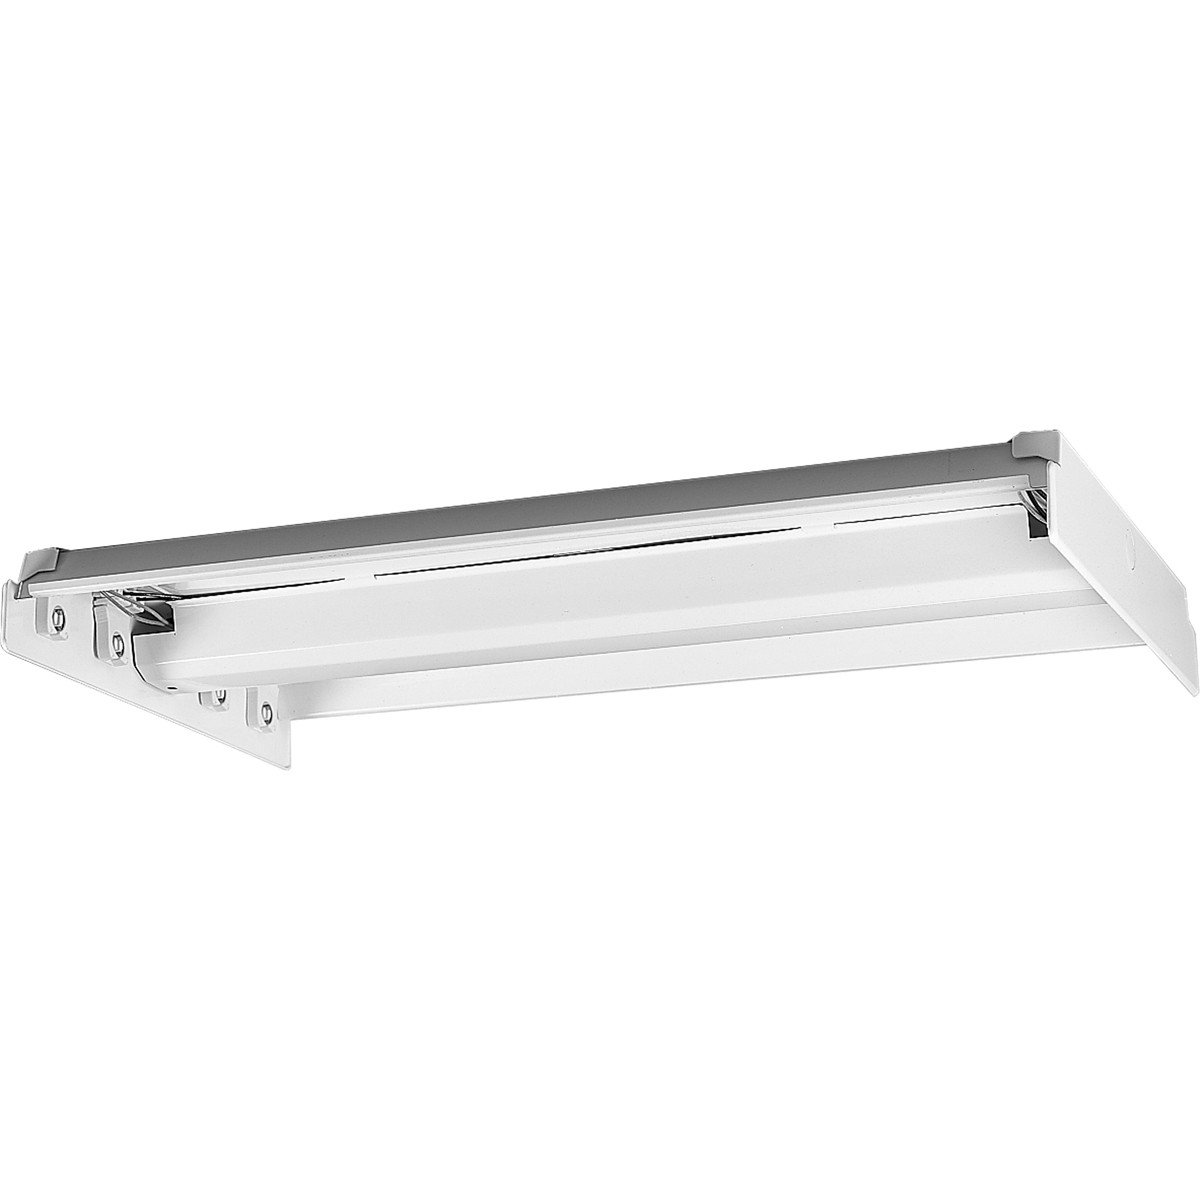 Progress Lighting P7216-30EB Surface Mounted White Chassis Regressed within Trim Standard 120 Volt High Power Factor Electronic Ballast, White